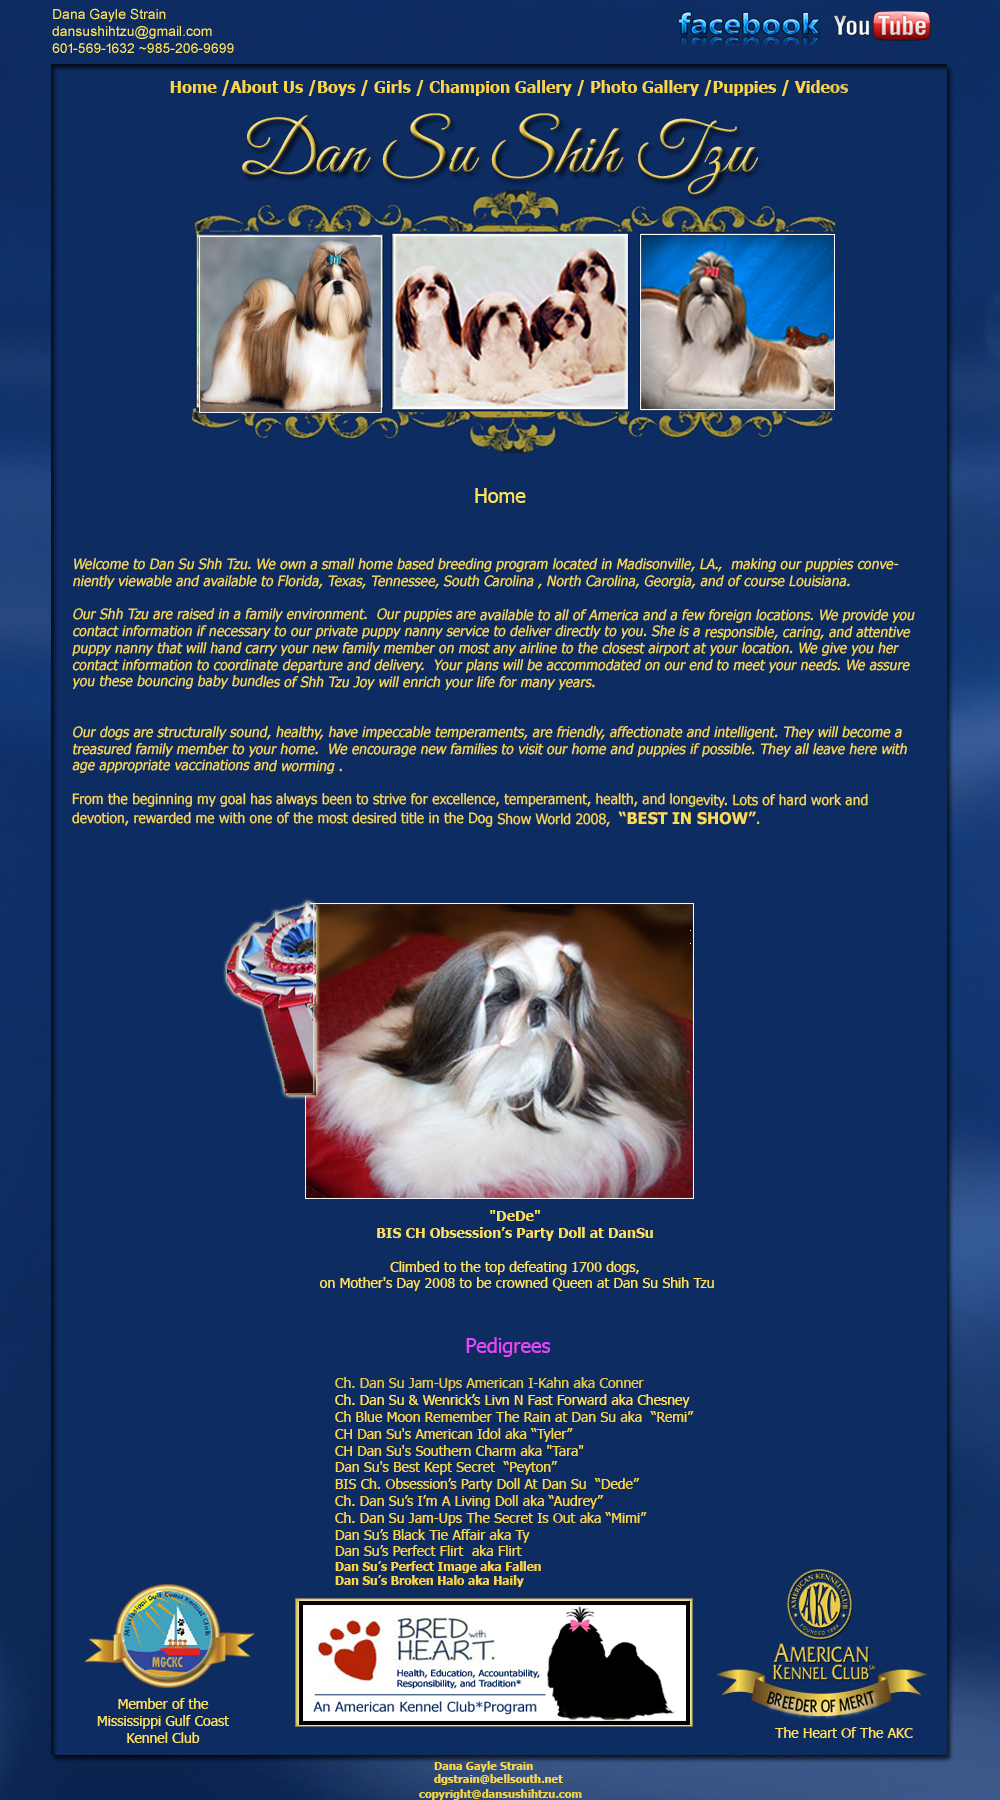 Shih Tzu Puppies Readily Available In Louisiana Texas Florida Shih Tzu Puppies Dan Su Shih Tzu Shih Tzu Breeder